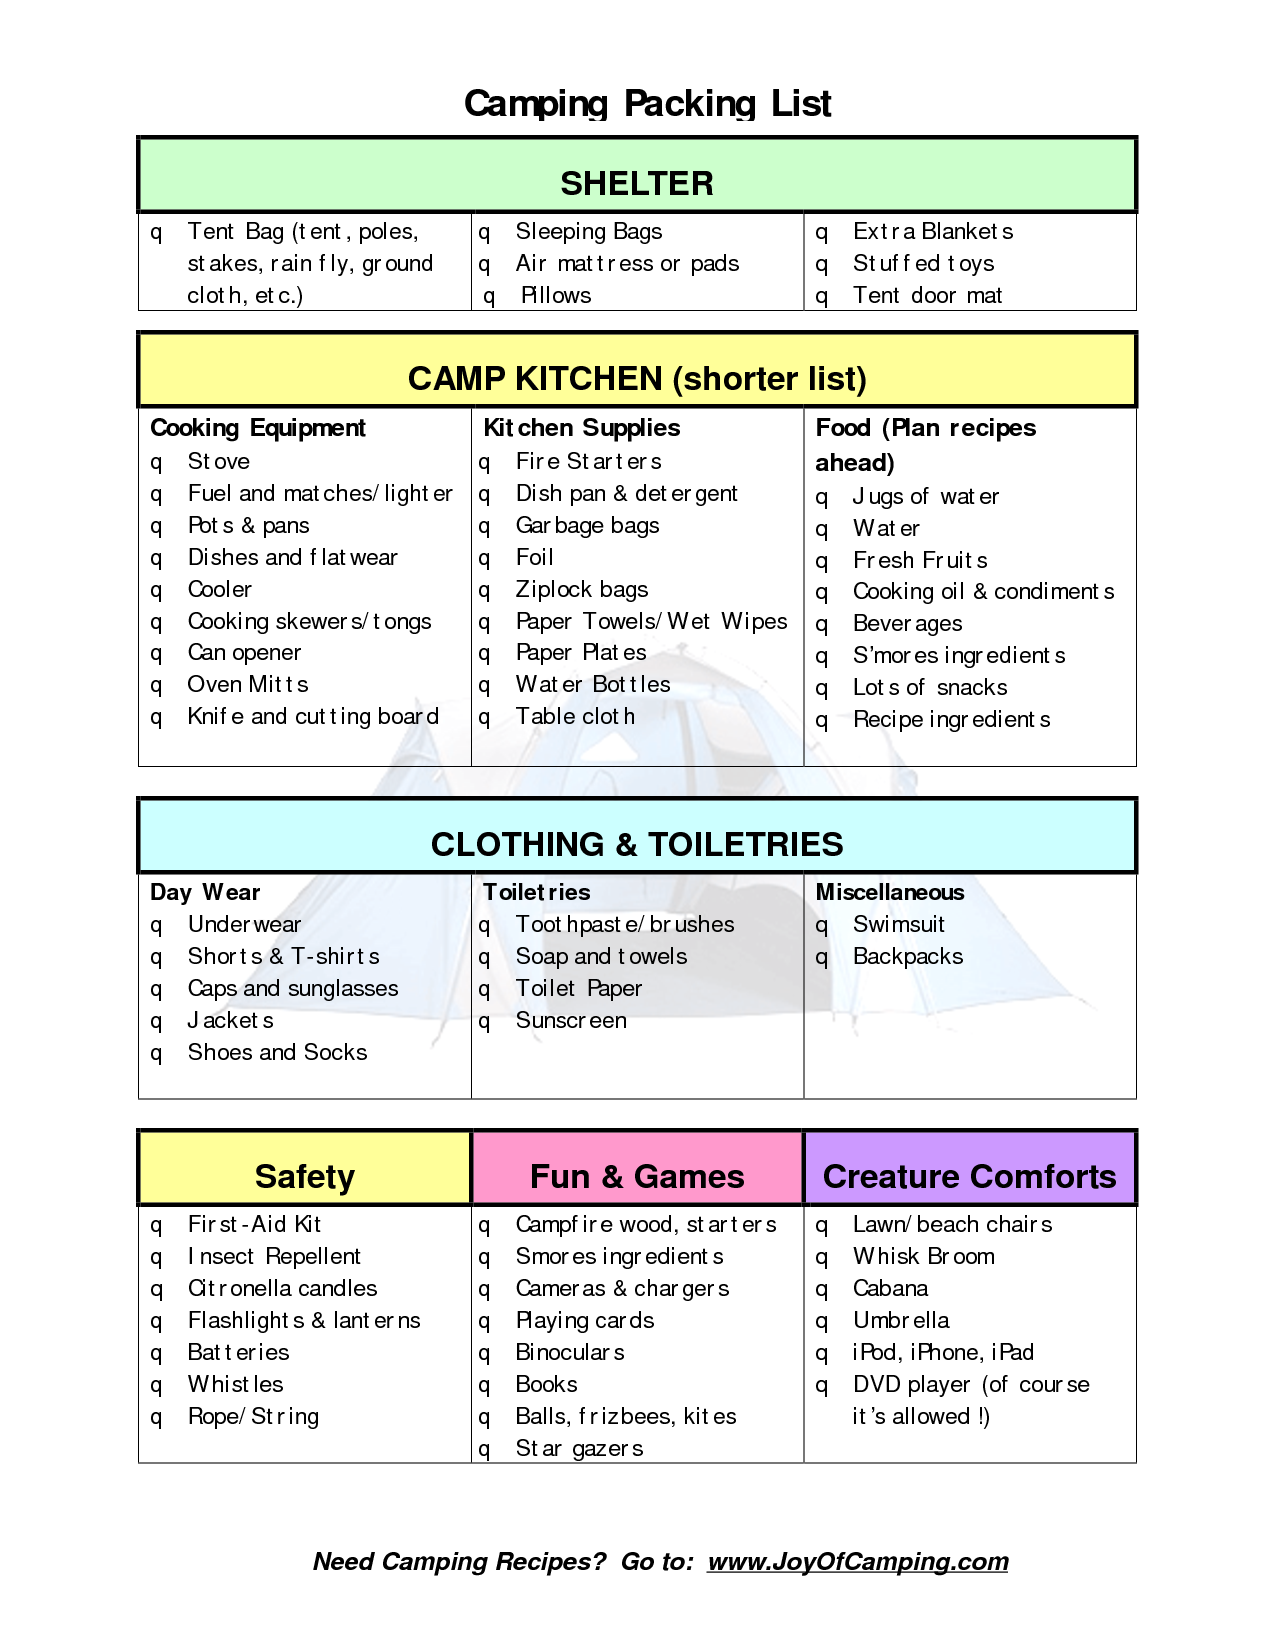 packing list for camping | Camping Packing List - PDF ...